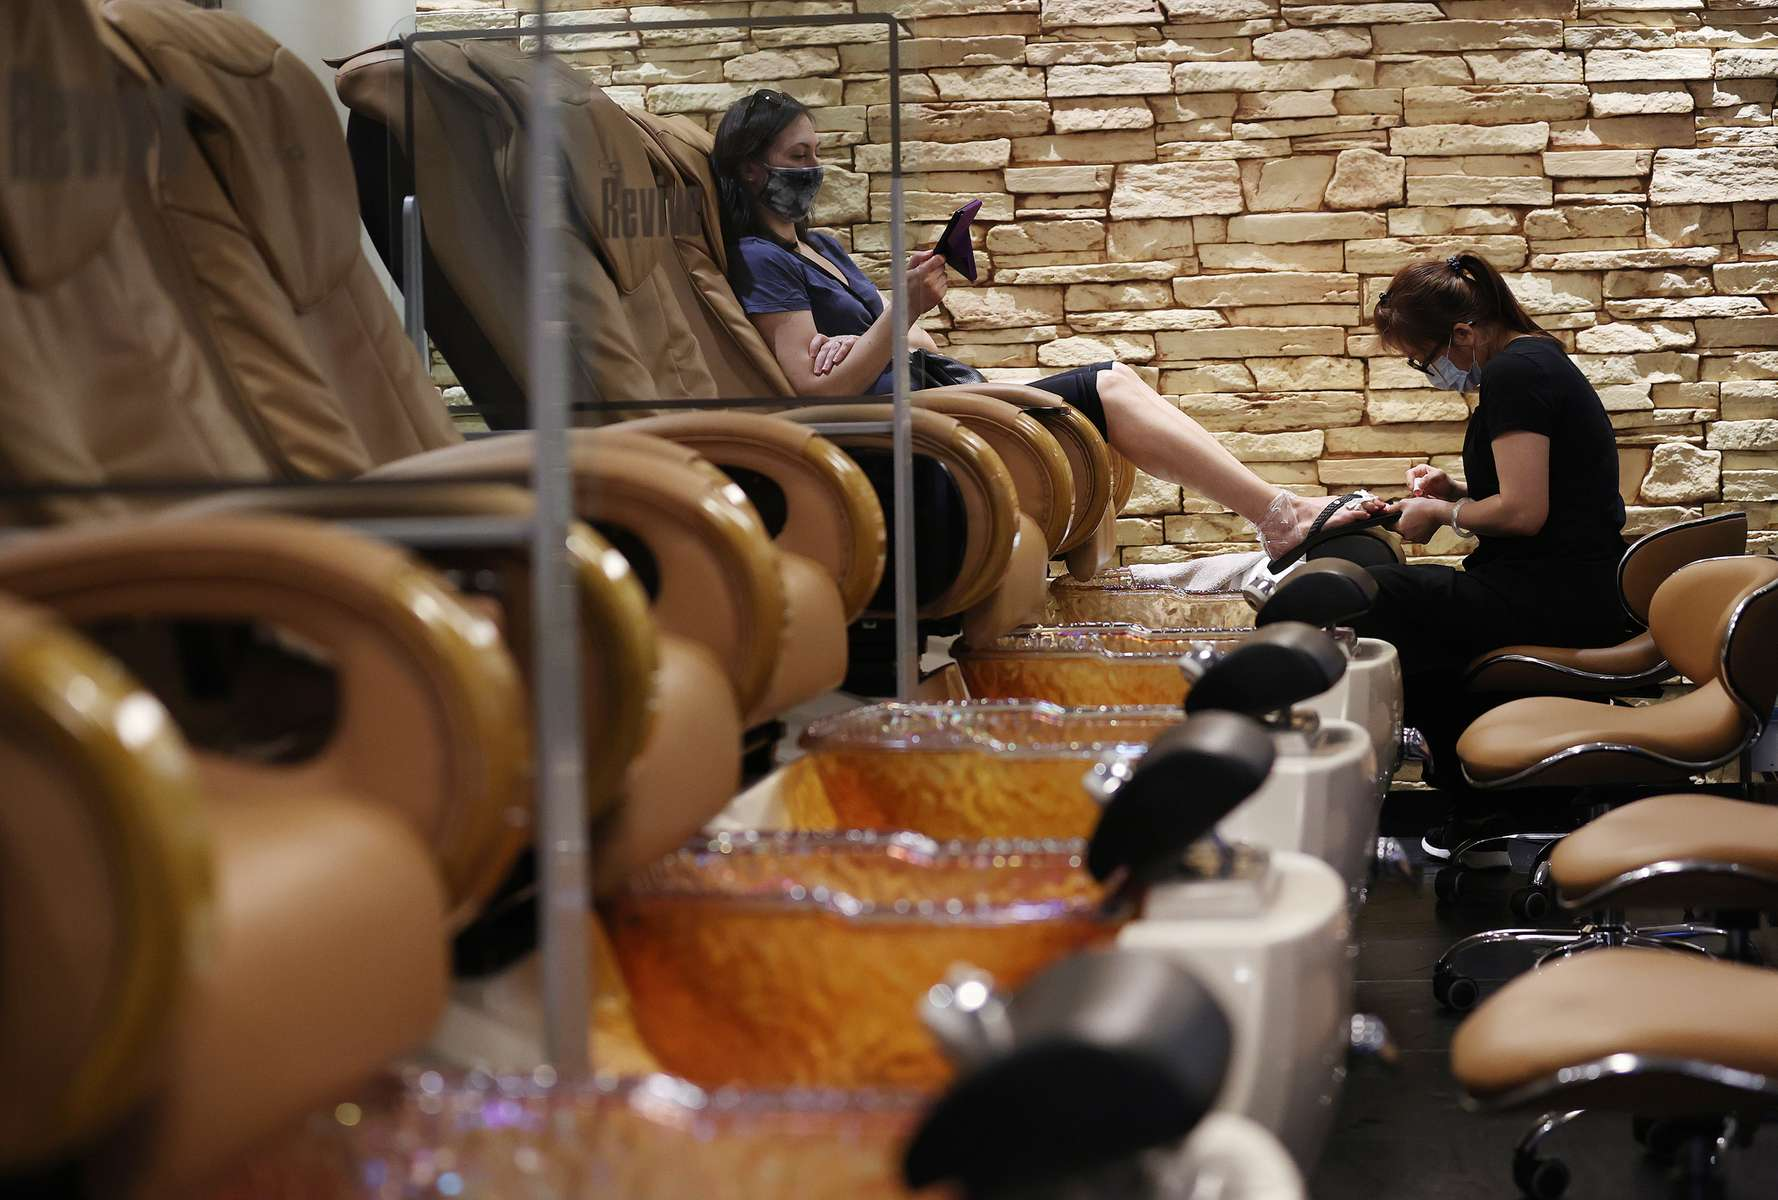 Cynthia Lee does a pedicure for a customer at Revive Nails and Spa as Long Island begins Phase 3 of reopening, allowing restaurants To Seat Inside At 50 Percent Capacity and nail salons to open by appointment only on June 24, 2020 in Huntington, New York.